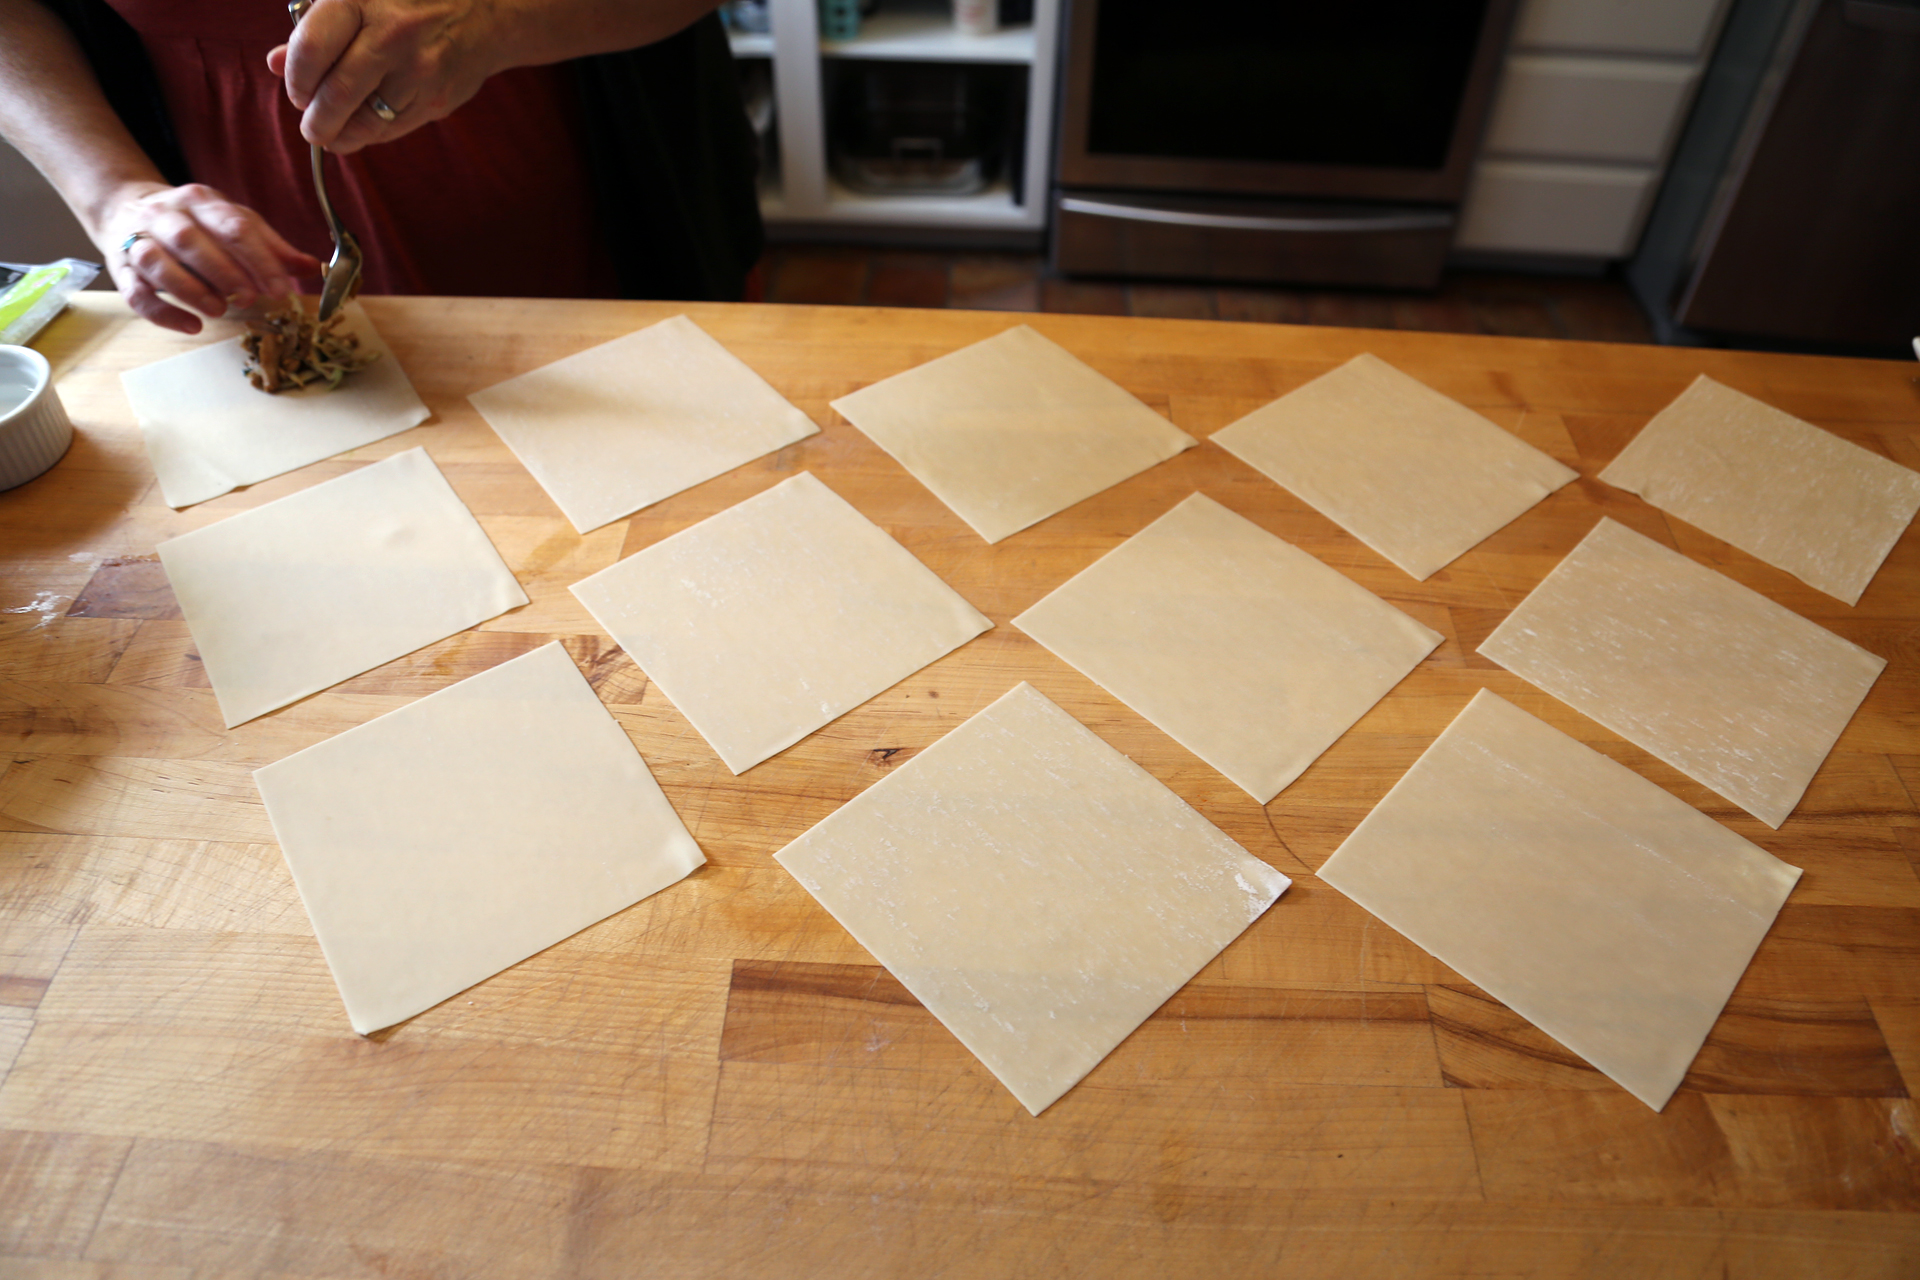 Spread out the egg roll wrappers on a work surface. Divide the mixture between the wrappers, placing the filling near one corner.